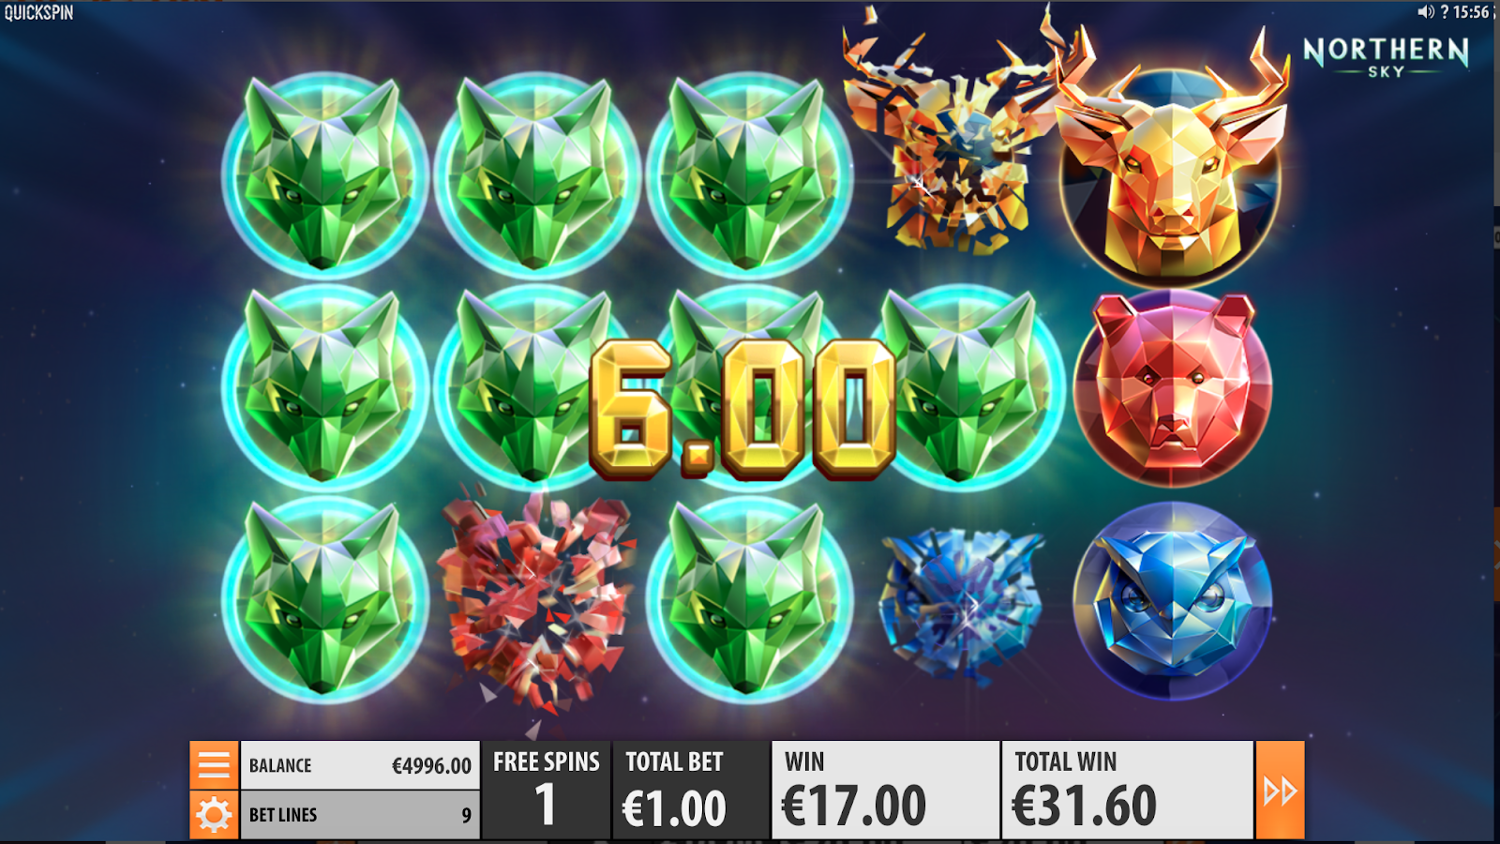 Northern Sky slot Bonus game re-spin